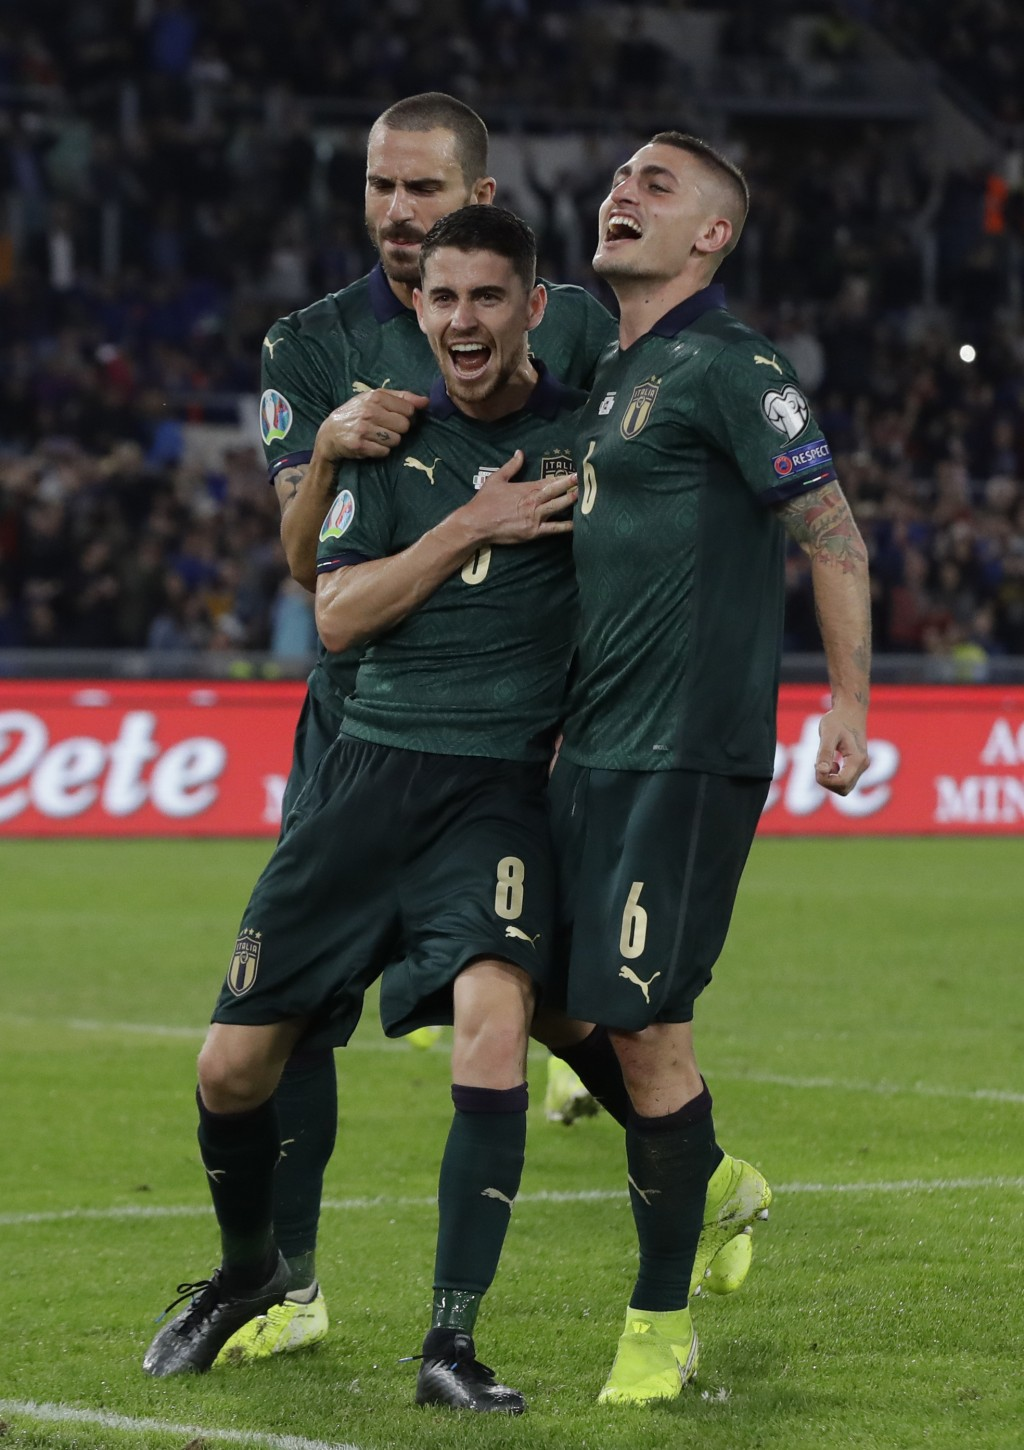 Italy's Jorginho, (8), celebrates with teammates after he scores the opening goal of the game from the penalty spot during the Euro 2020 group J quali...